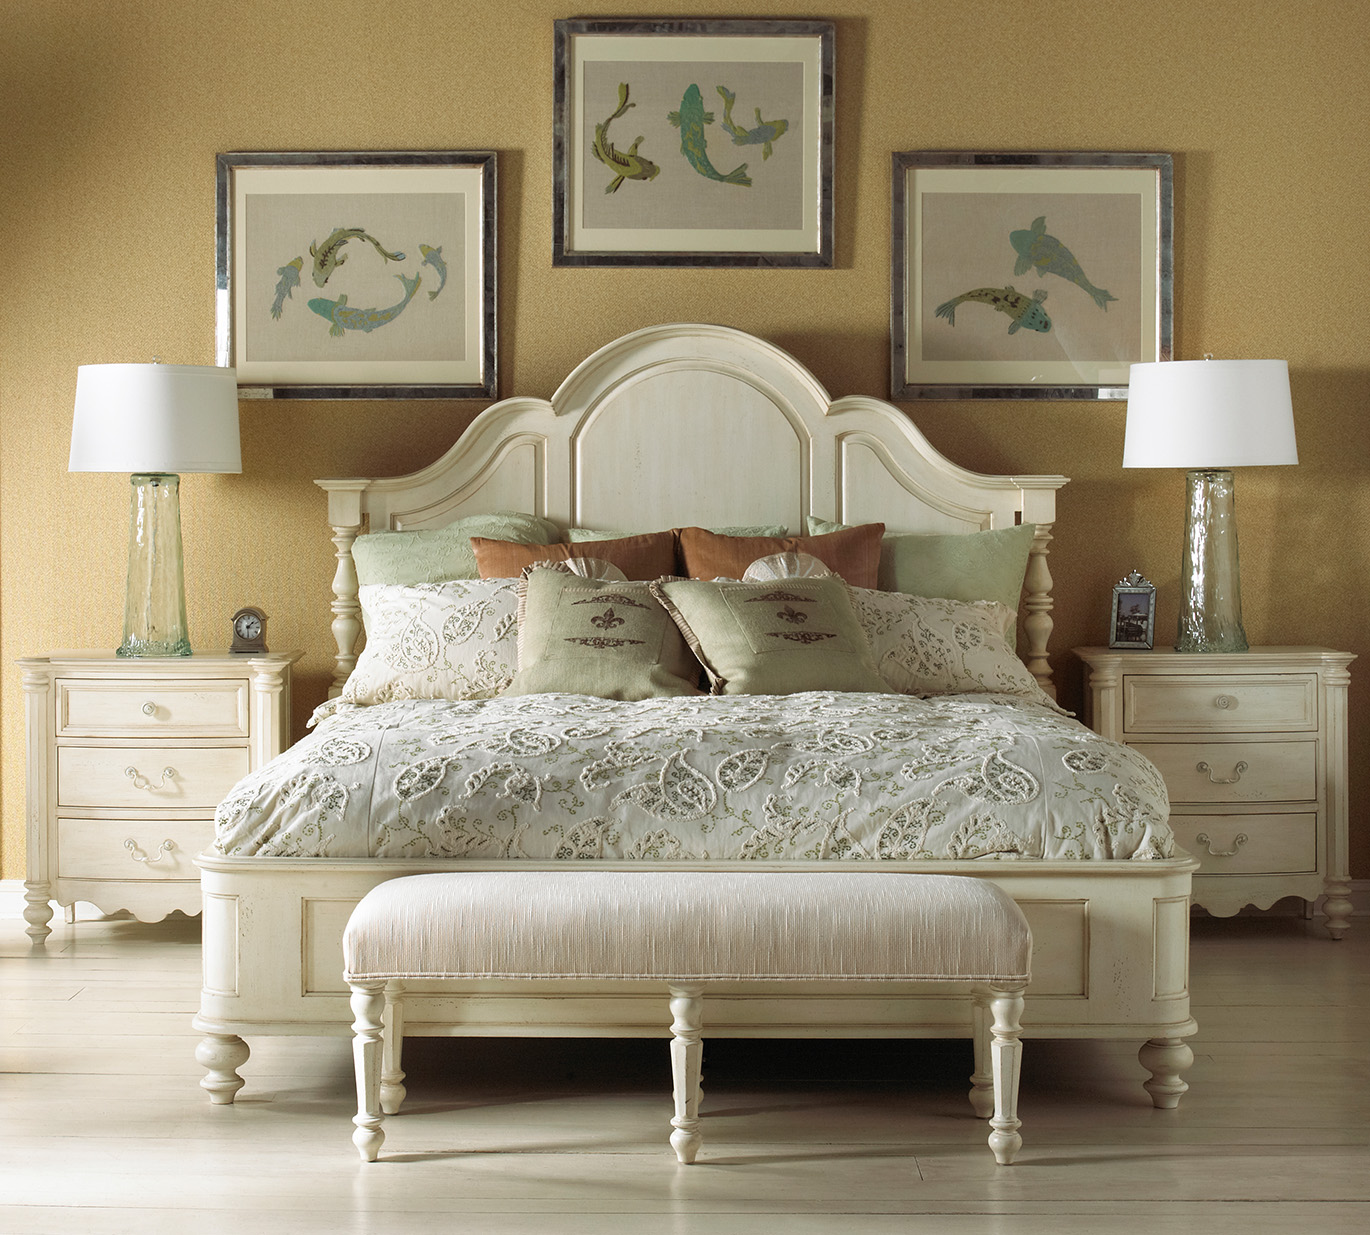 FFDM Summer Home Platform King Bed